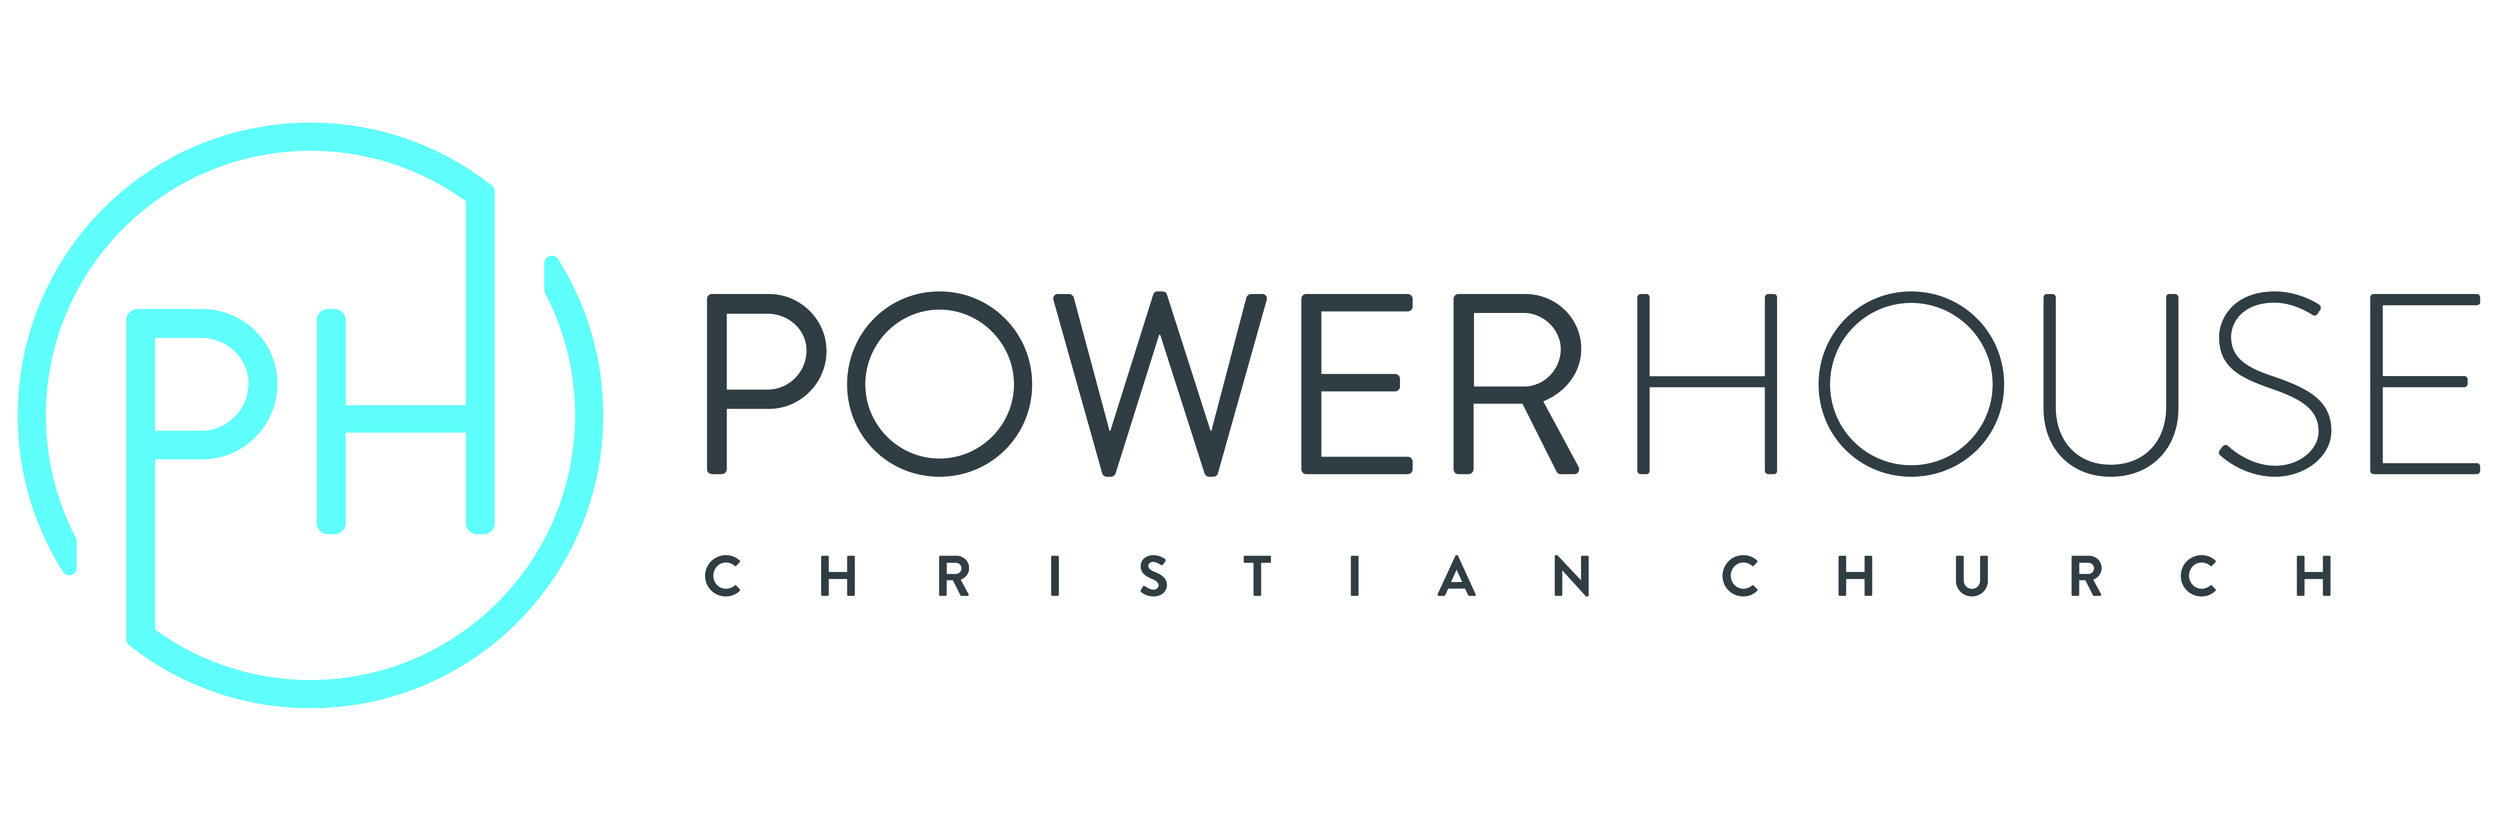 Powerhouse_Christian_Church.jpg